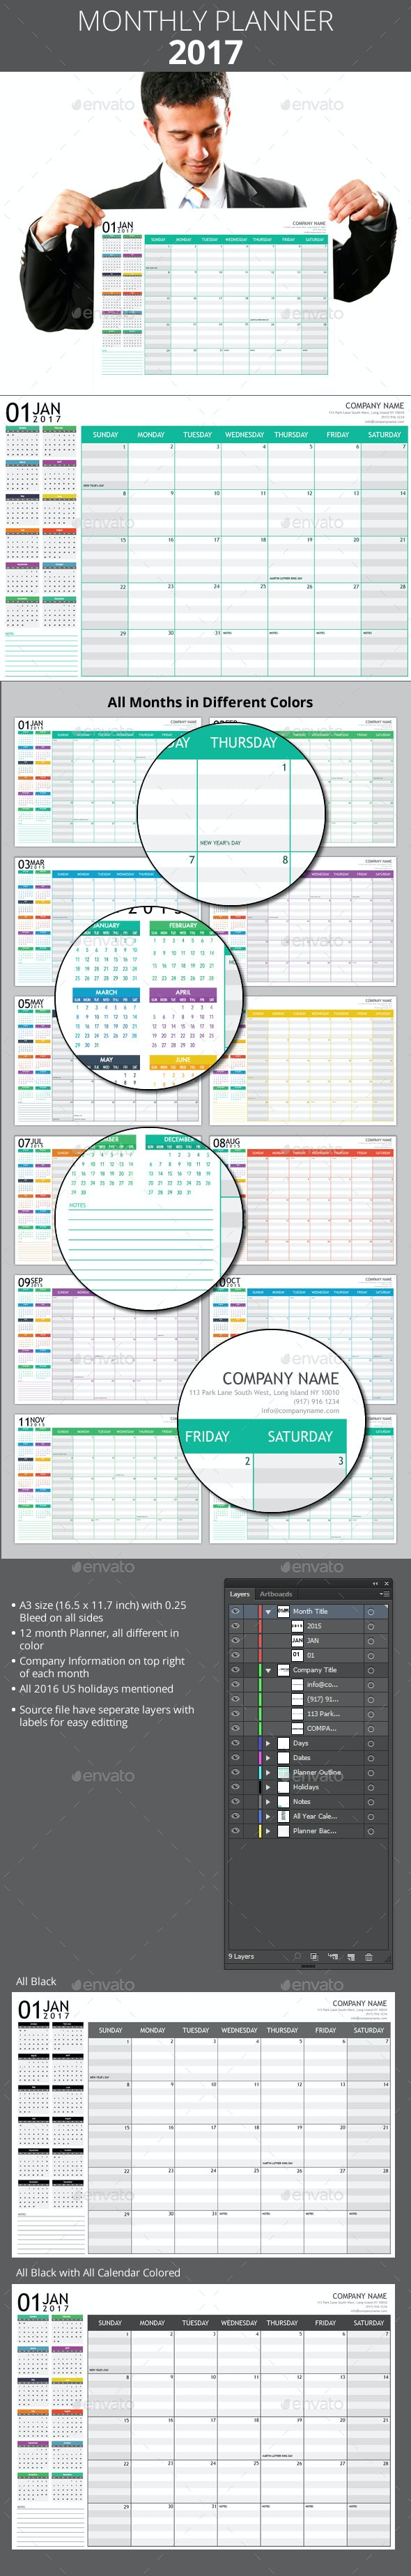 Monthly Planner 2017 + A3 Poster - Calendars Stationery